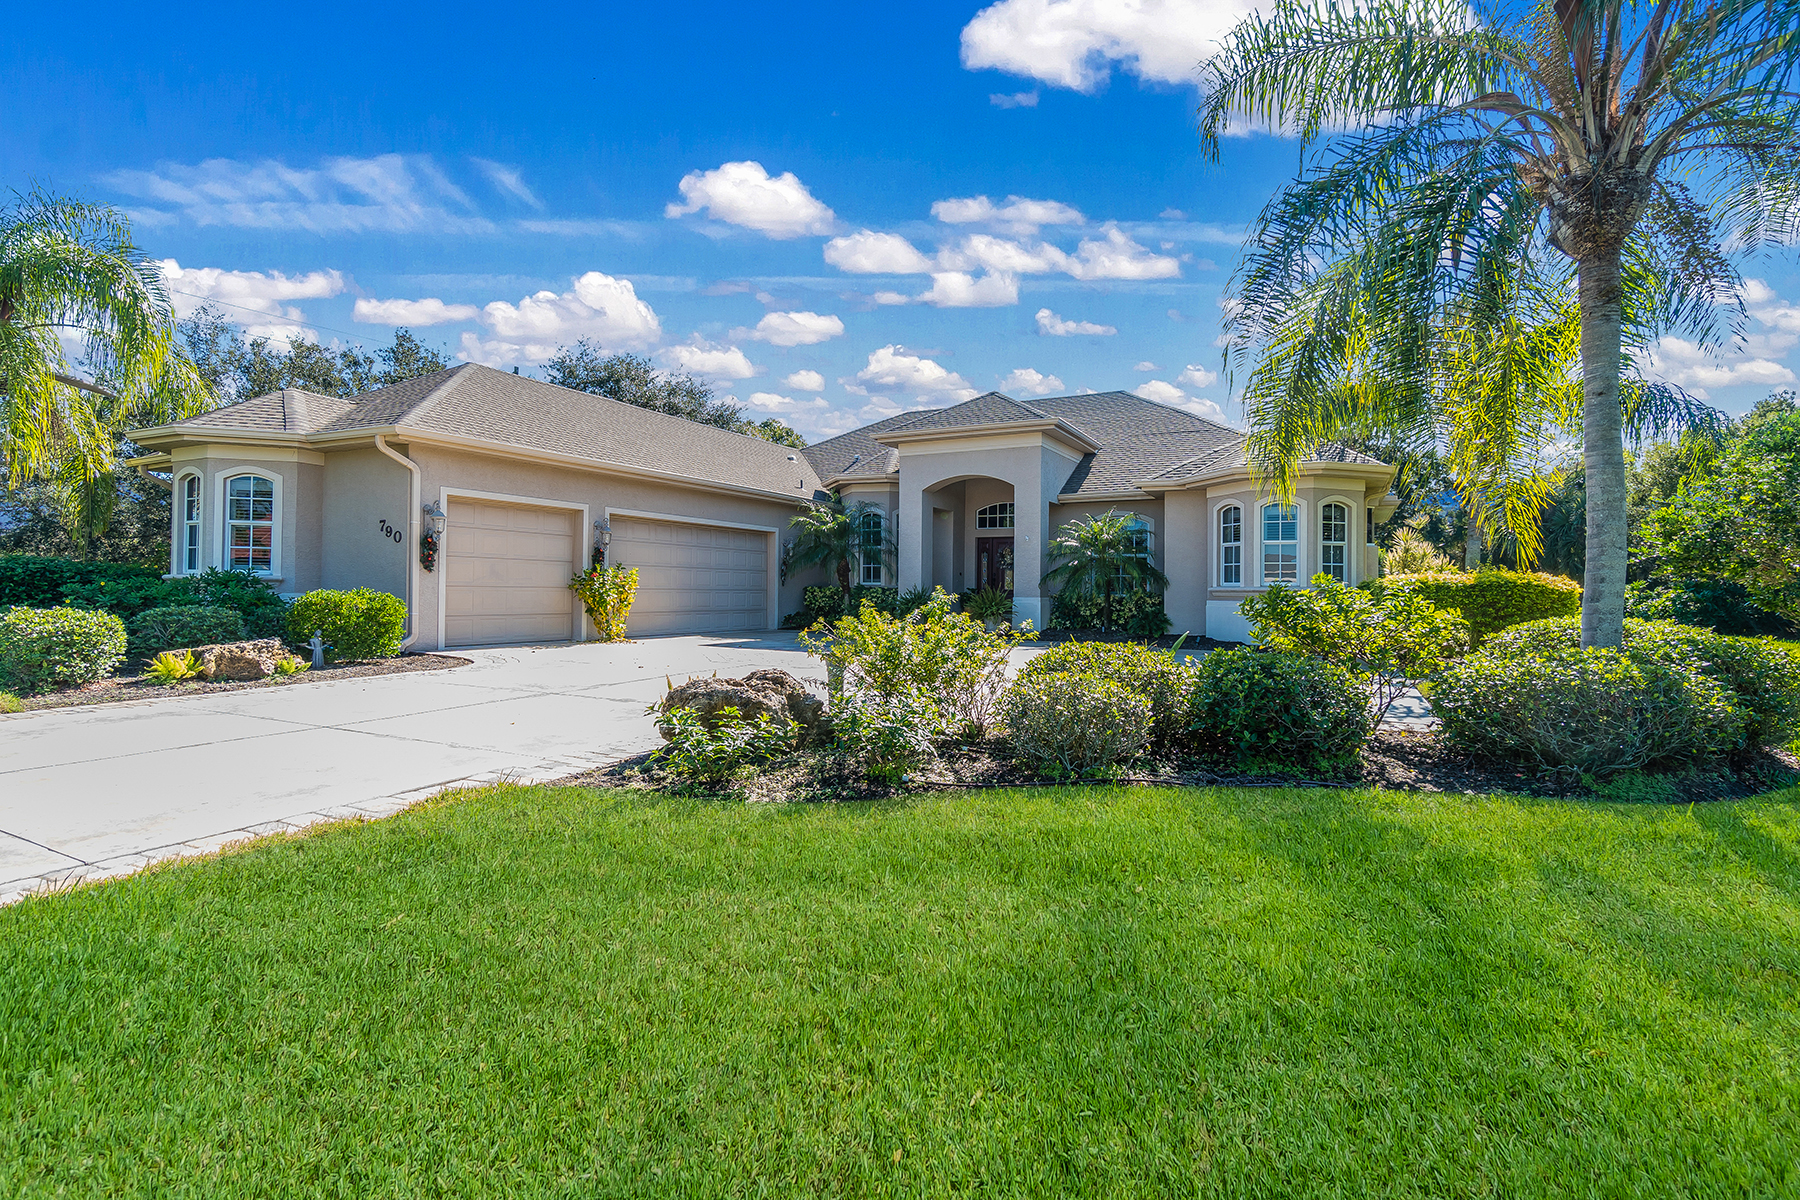 Single Family Home for Sale at PRESERVE AT MISSION VALLEY 790 Vanderbilt Dr Nokomis, Florida, 34275 United States